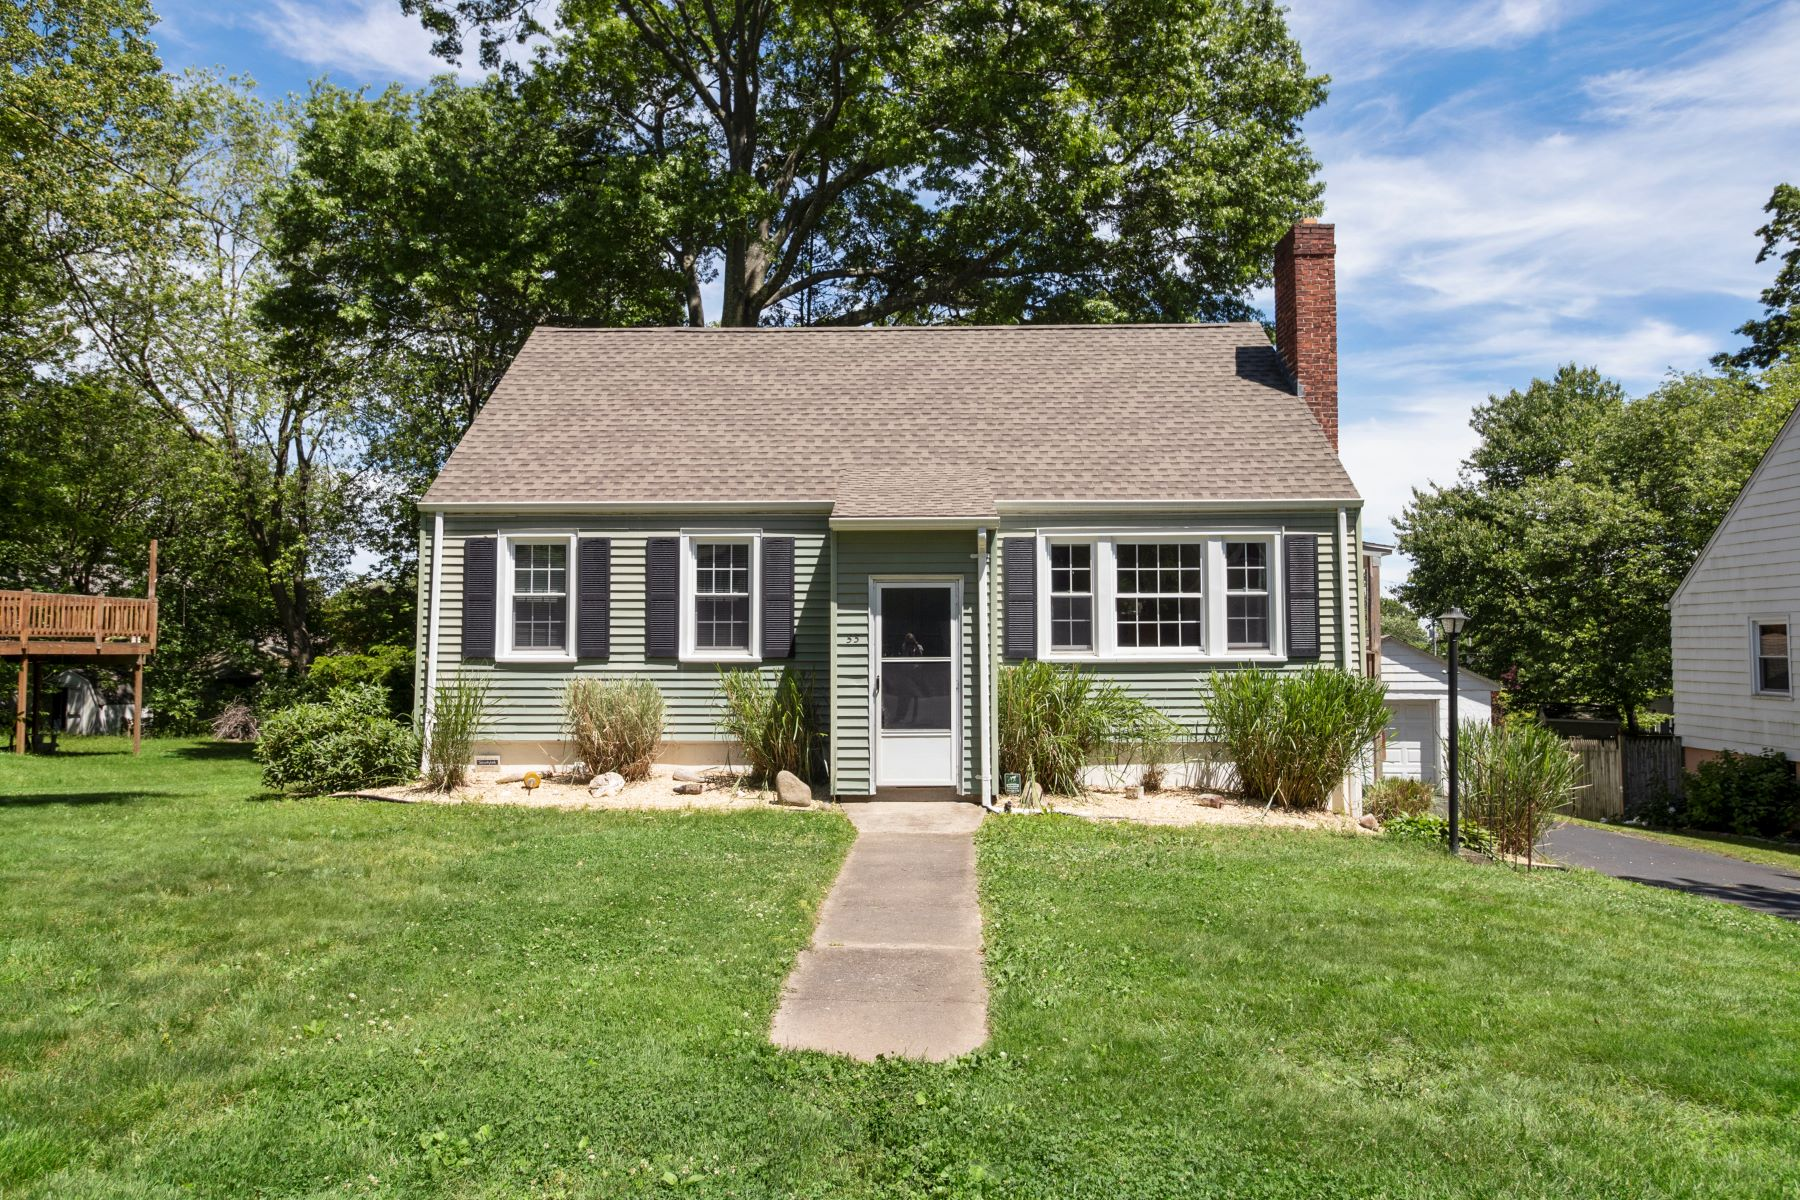 Single Family Homes for Sale at Well Maintained Cape 53 Milton Avenue West Haven, Connecticut 06516 United States